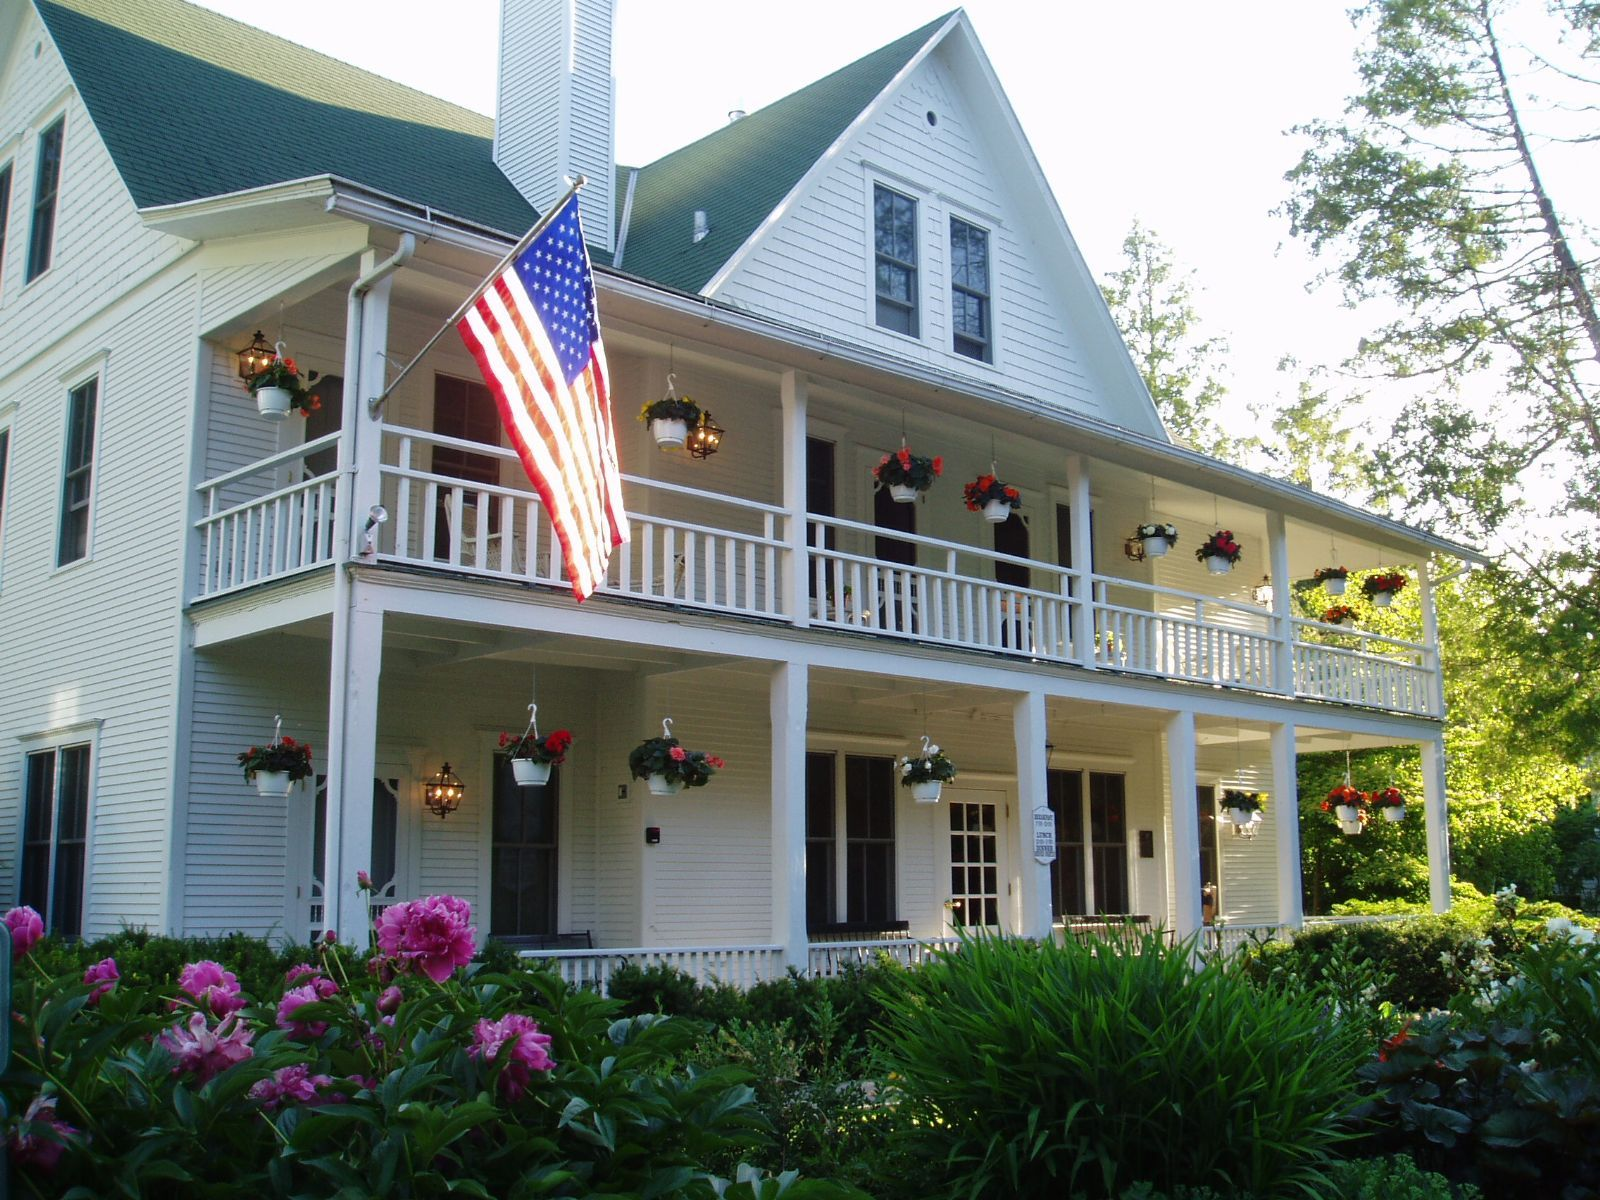 Best 25 door county hotels ideas on pinterest hotels in for Door county lodging fish creek